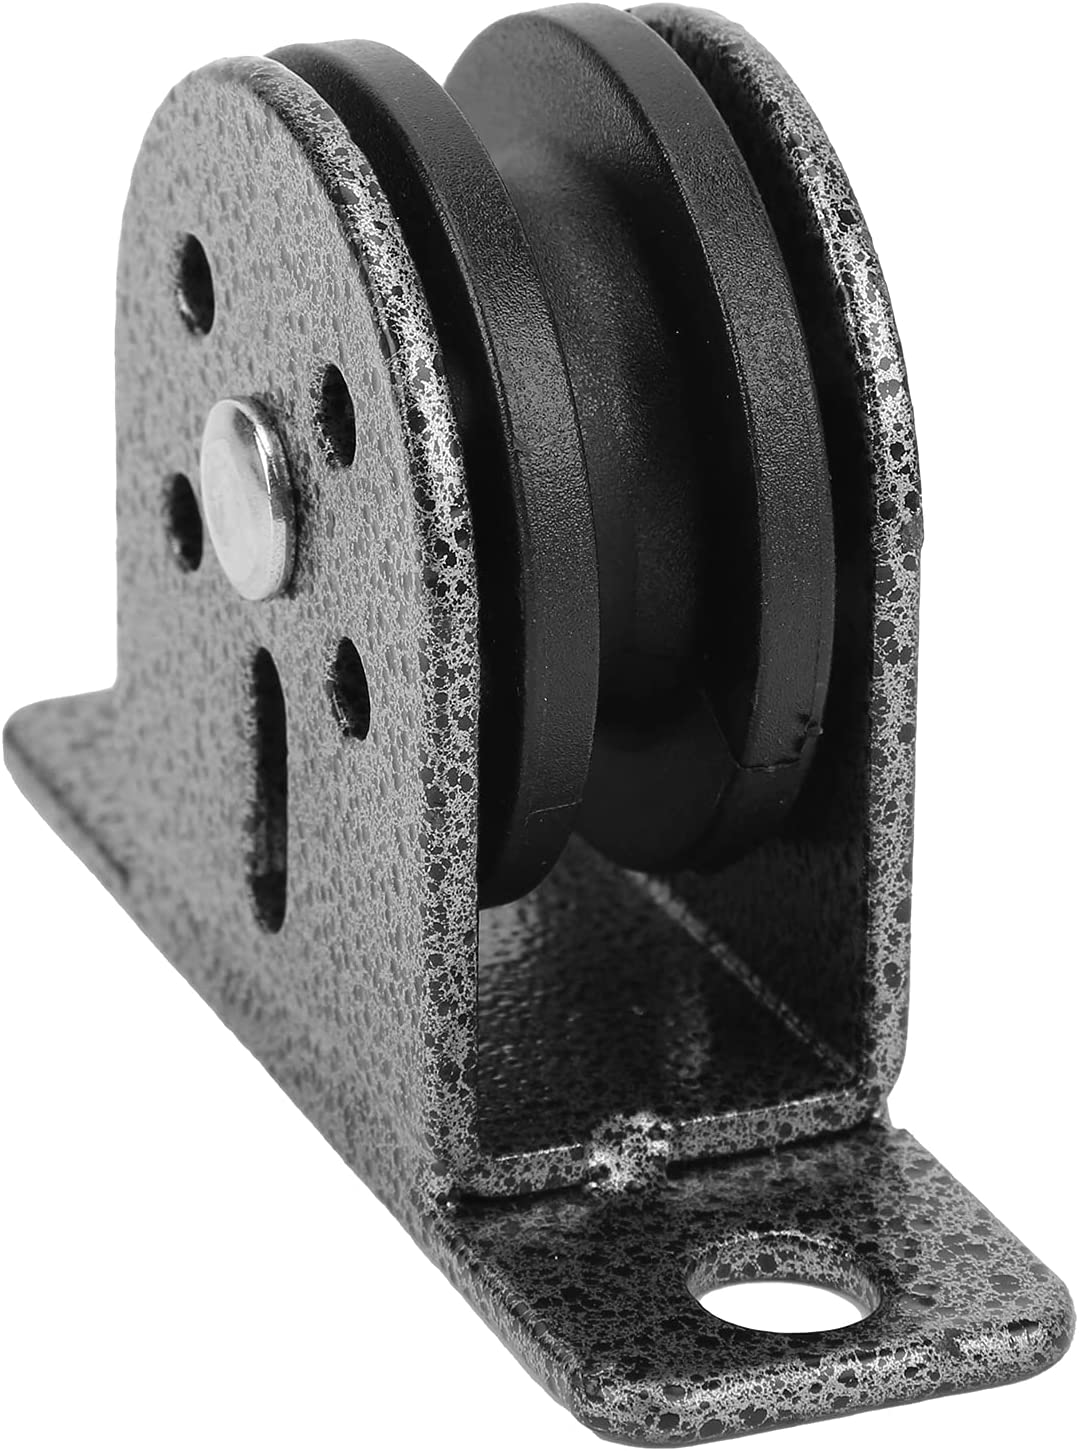 Solid Single Pulley High‑Strength Block Fixed San Francisco security Mall